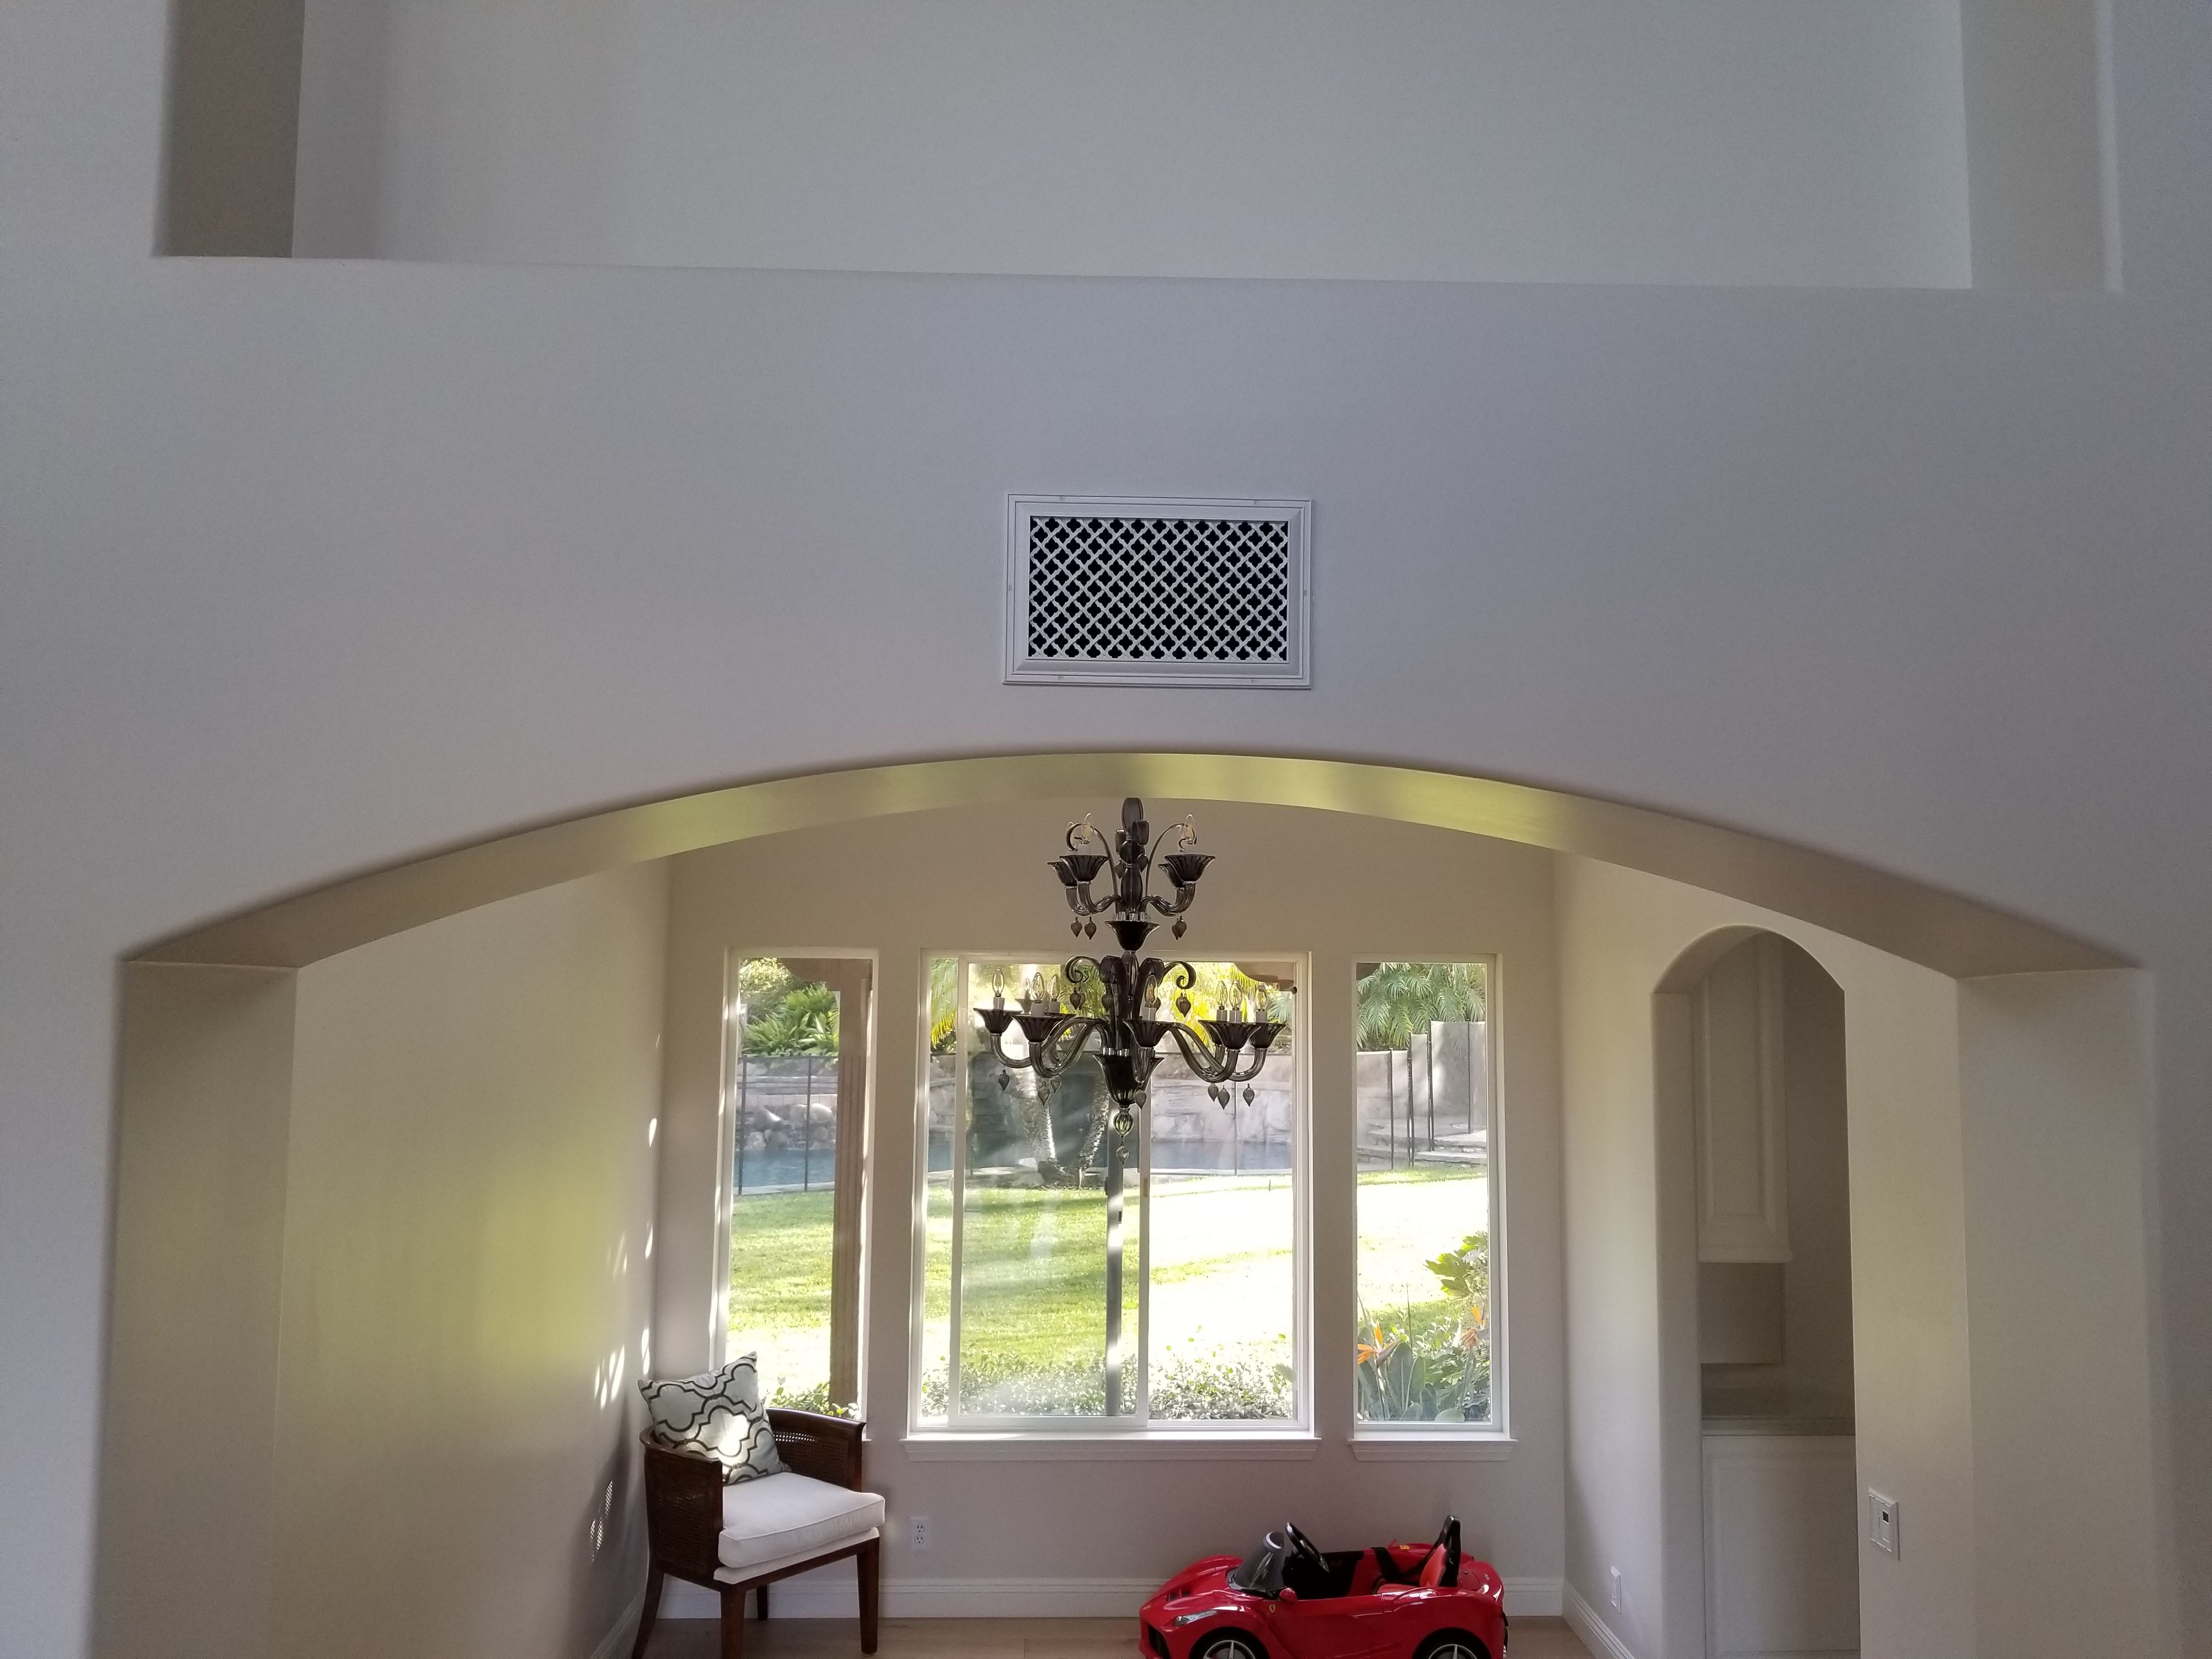 Ribbon Vent Cover Vent covers, Interior, exterior, Cover